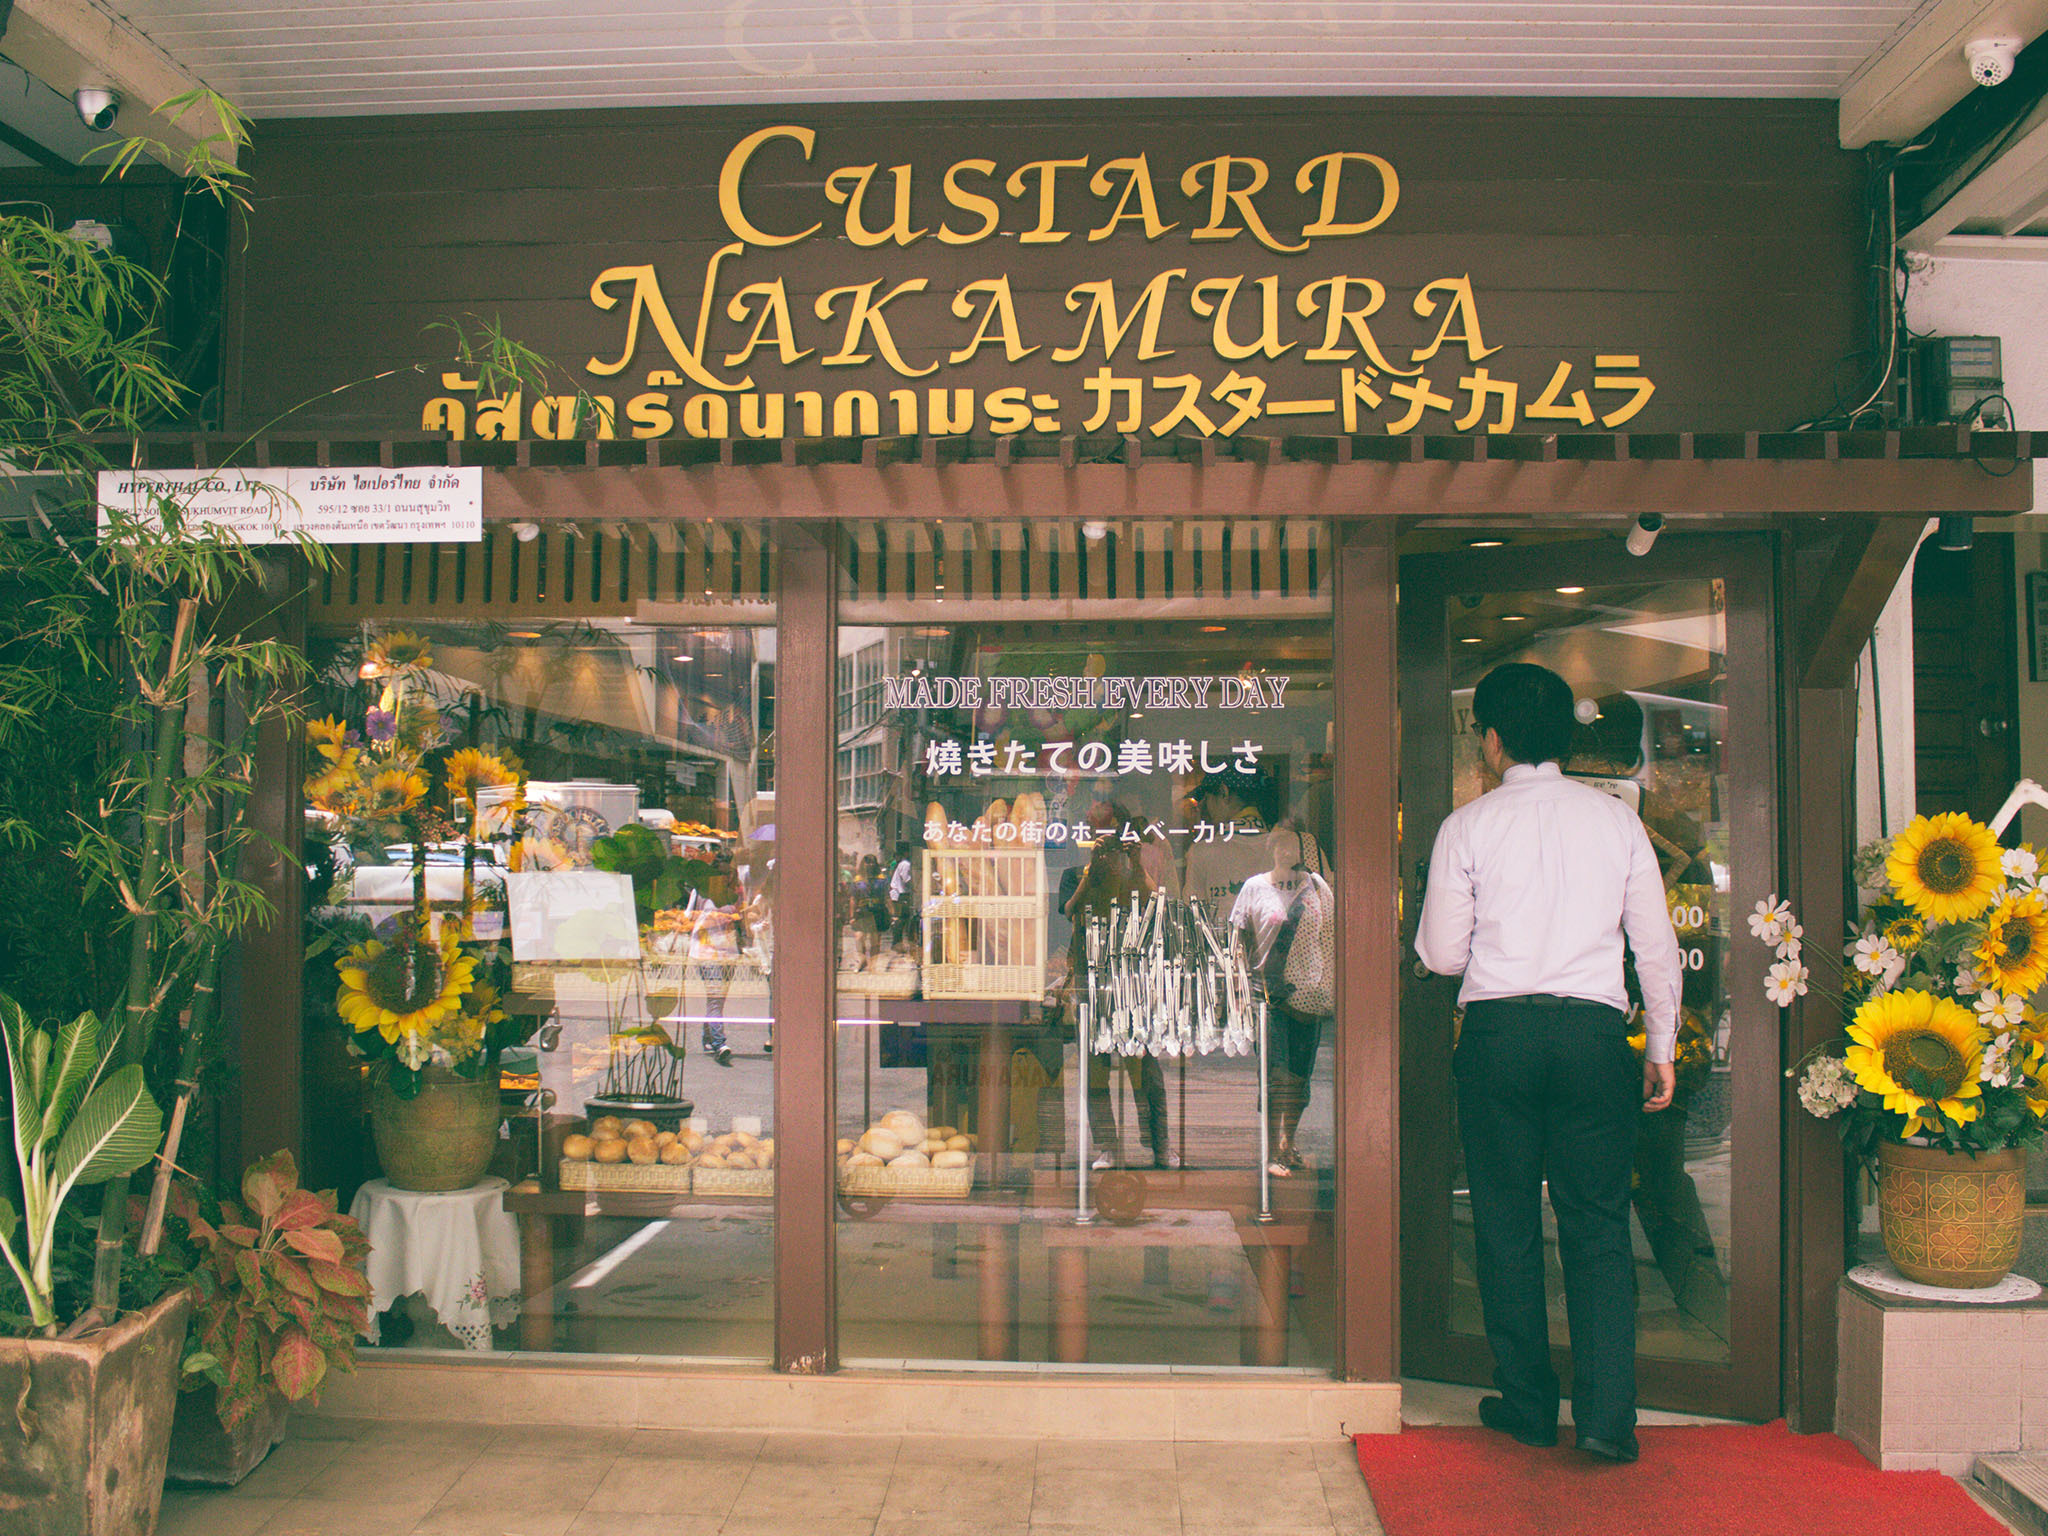 Custard Nakamura offers a variety of Japanese-styled